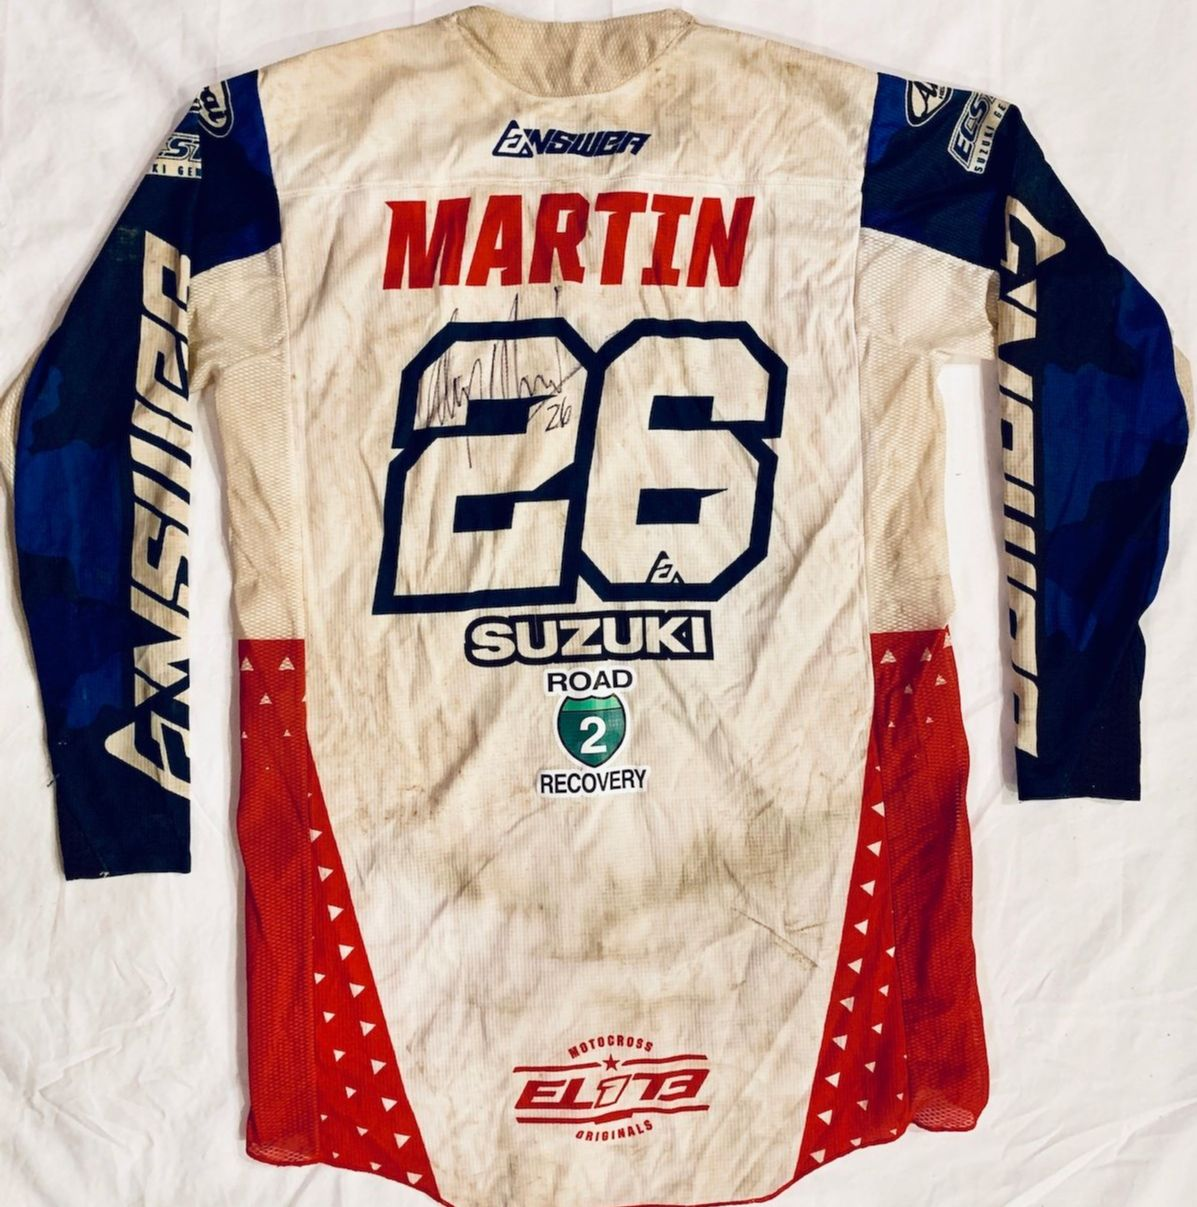 Road 2 Recovery Hosts Motocross Memorabilia Mania eBay Auction - Martin race jersey